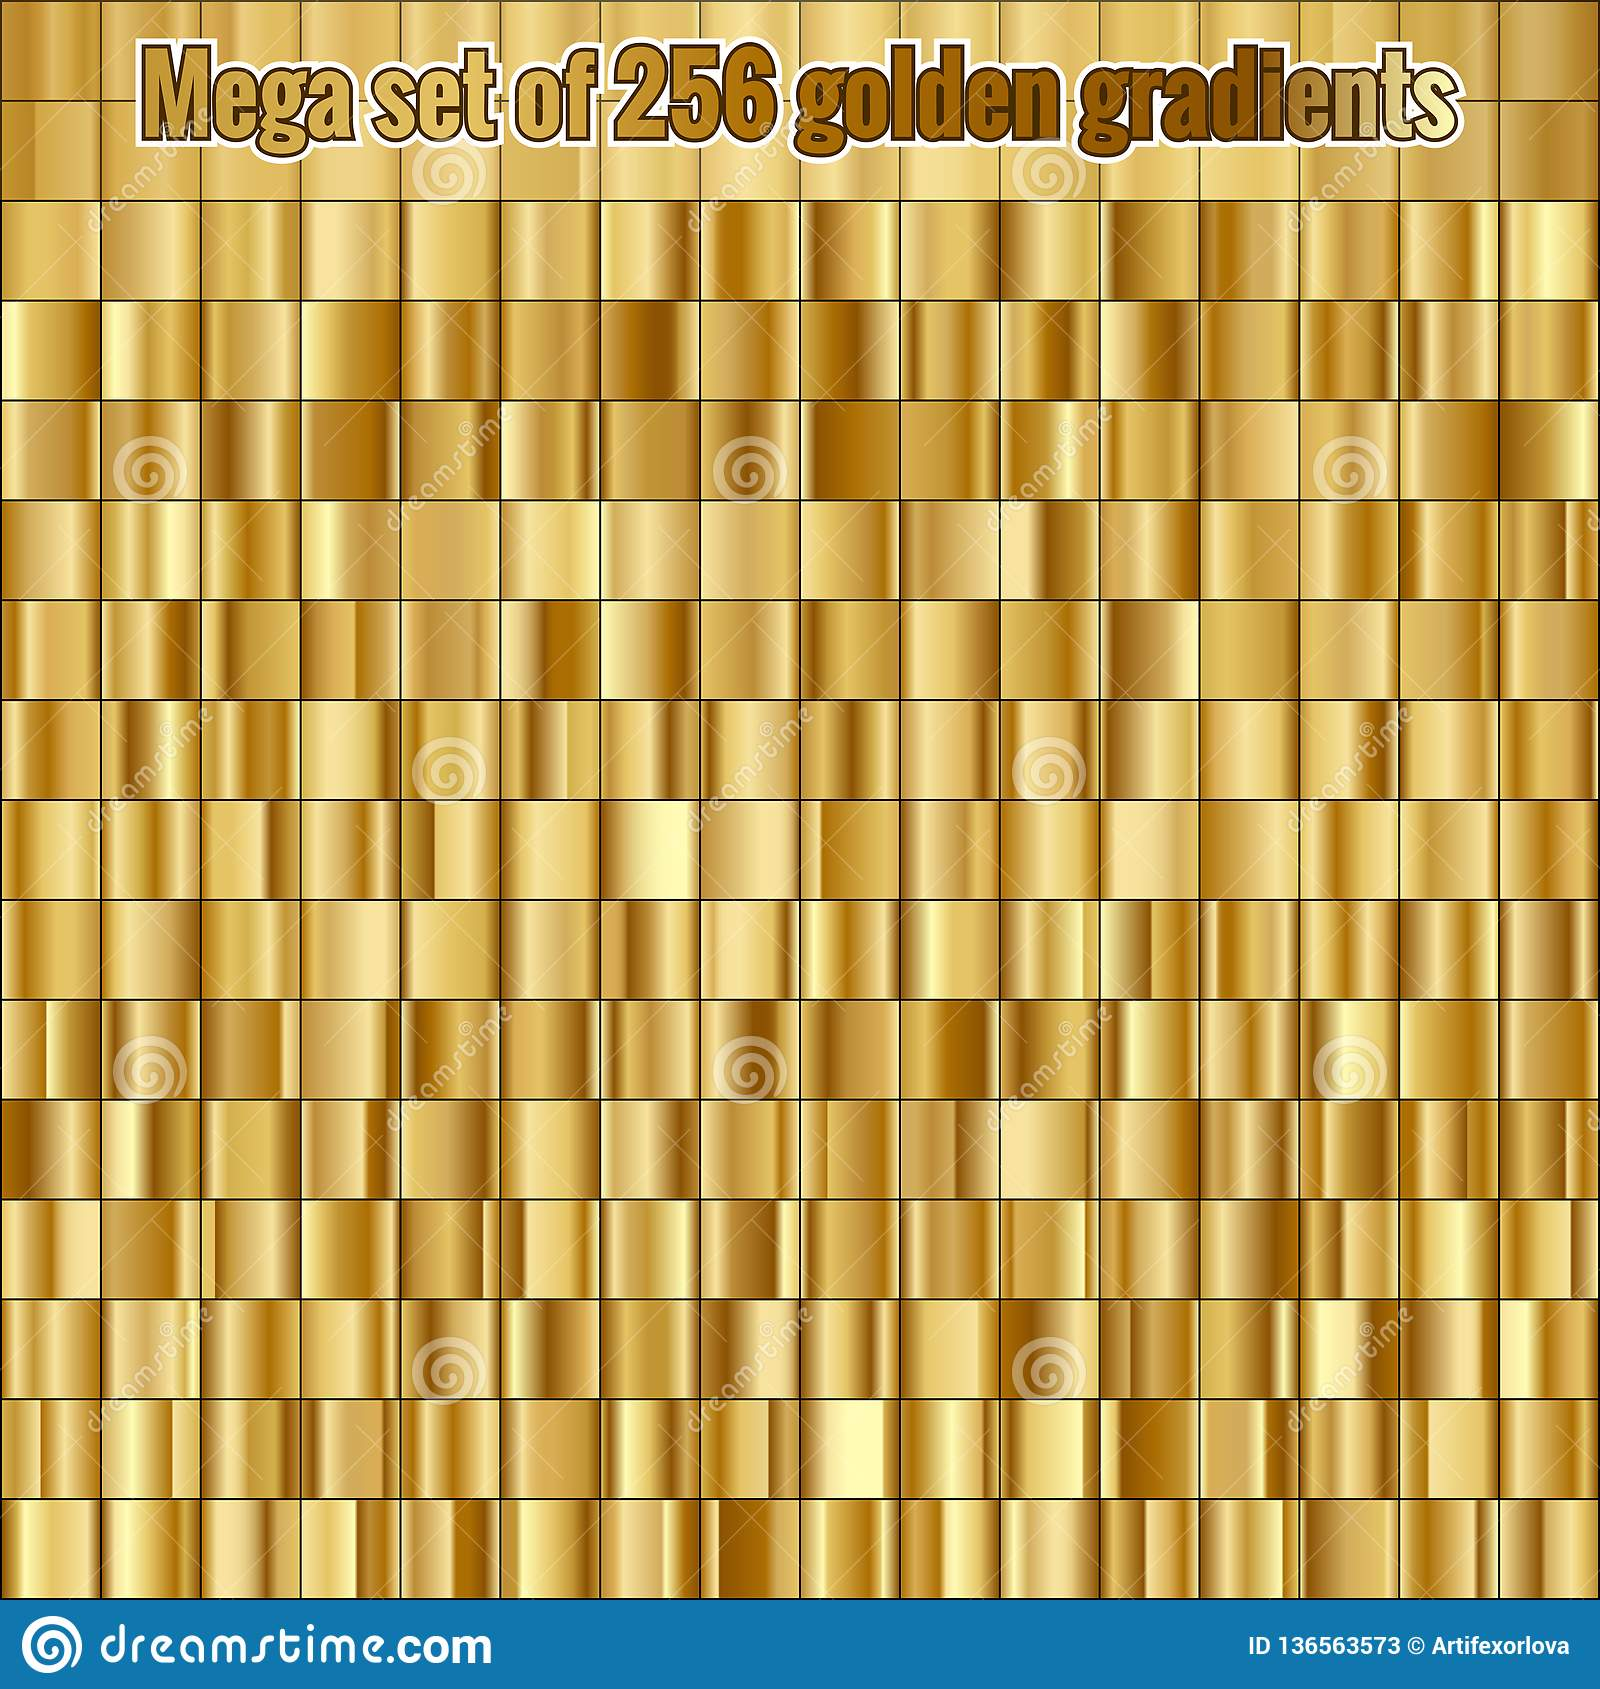 Mega set consisting of collection 256 golden gradients. EPS 10